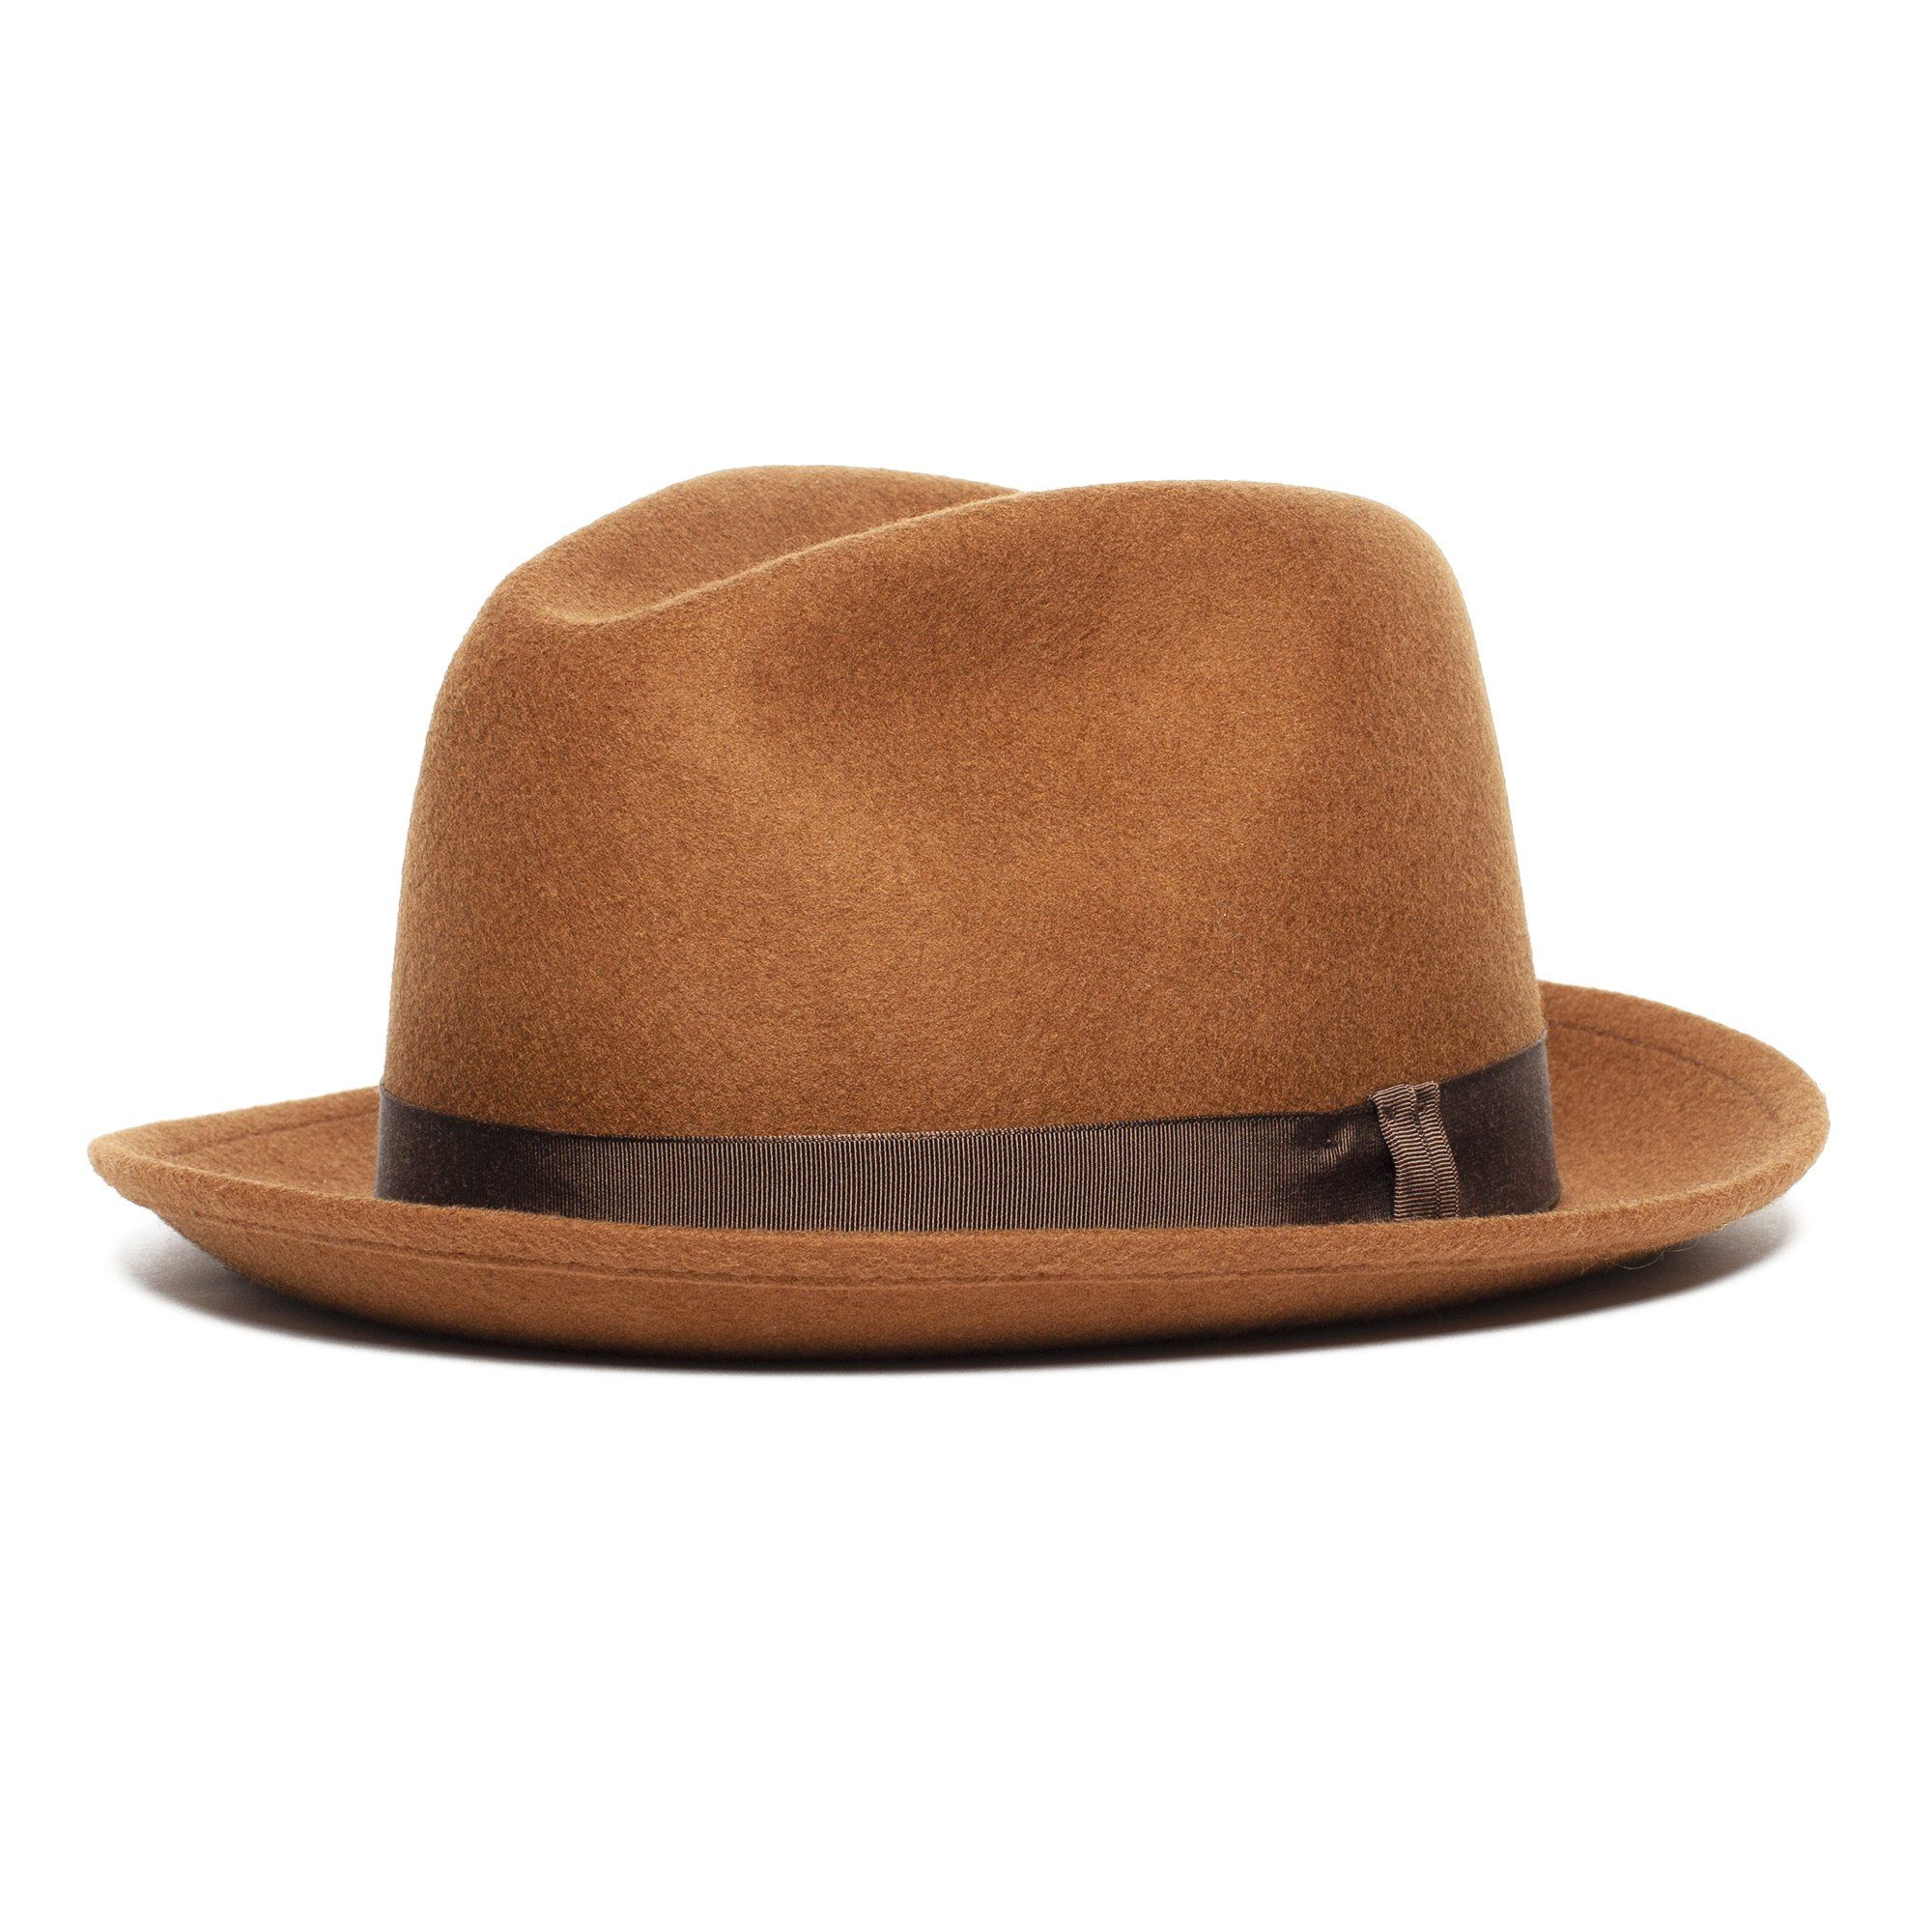 Johnny In 2021 Mens Hats Fashion Fedora Hat Men Outfits Hats For Men